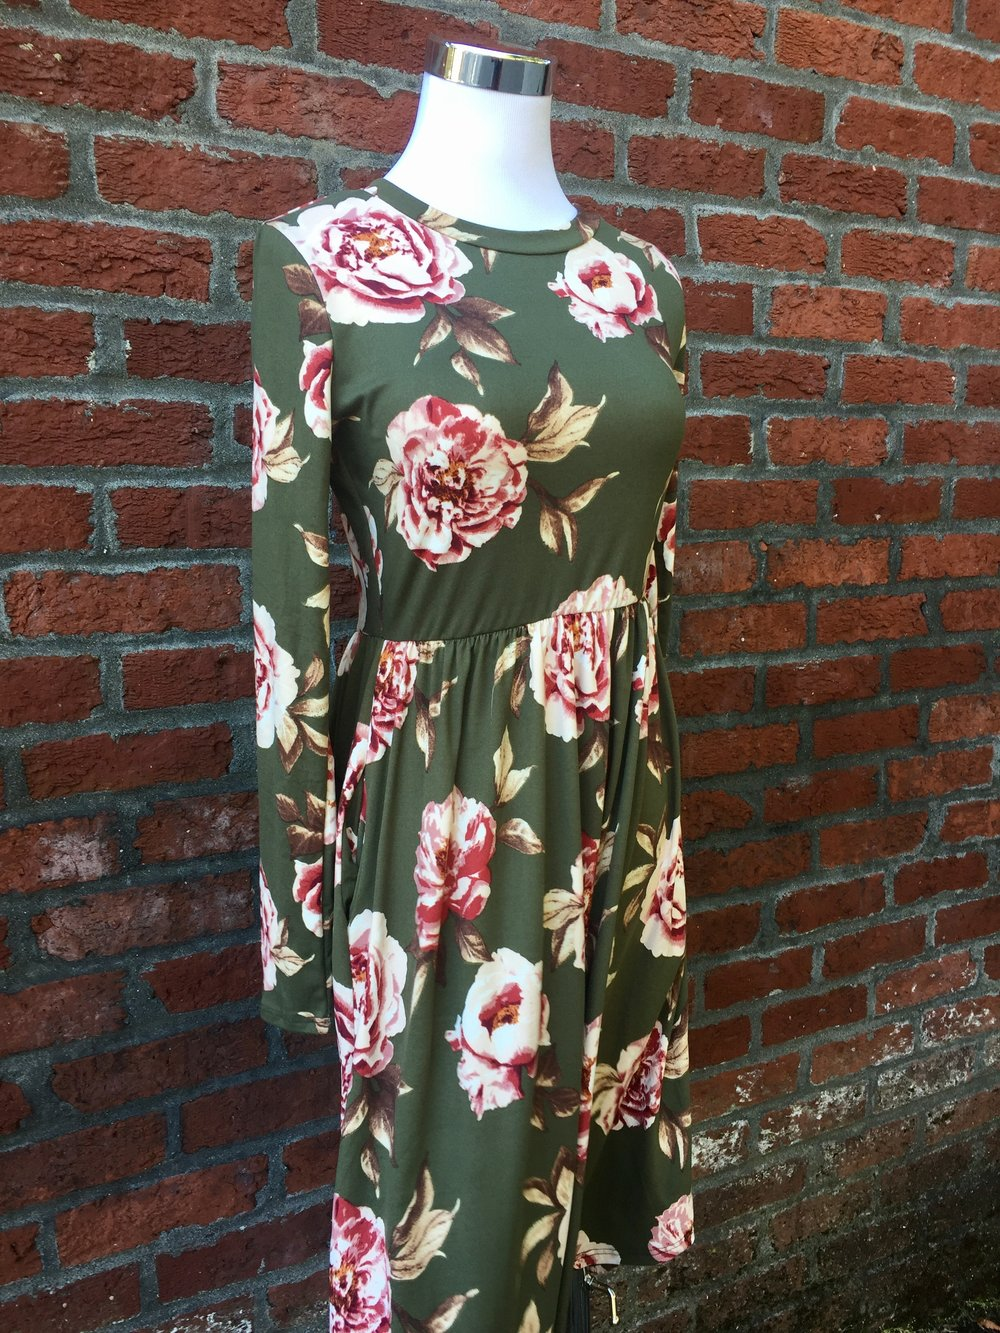 Reb & J Green Floral Dress (Also in Black, $38)